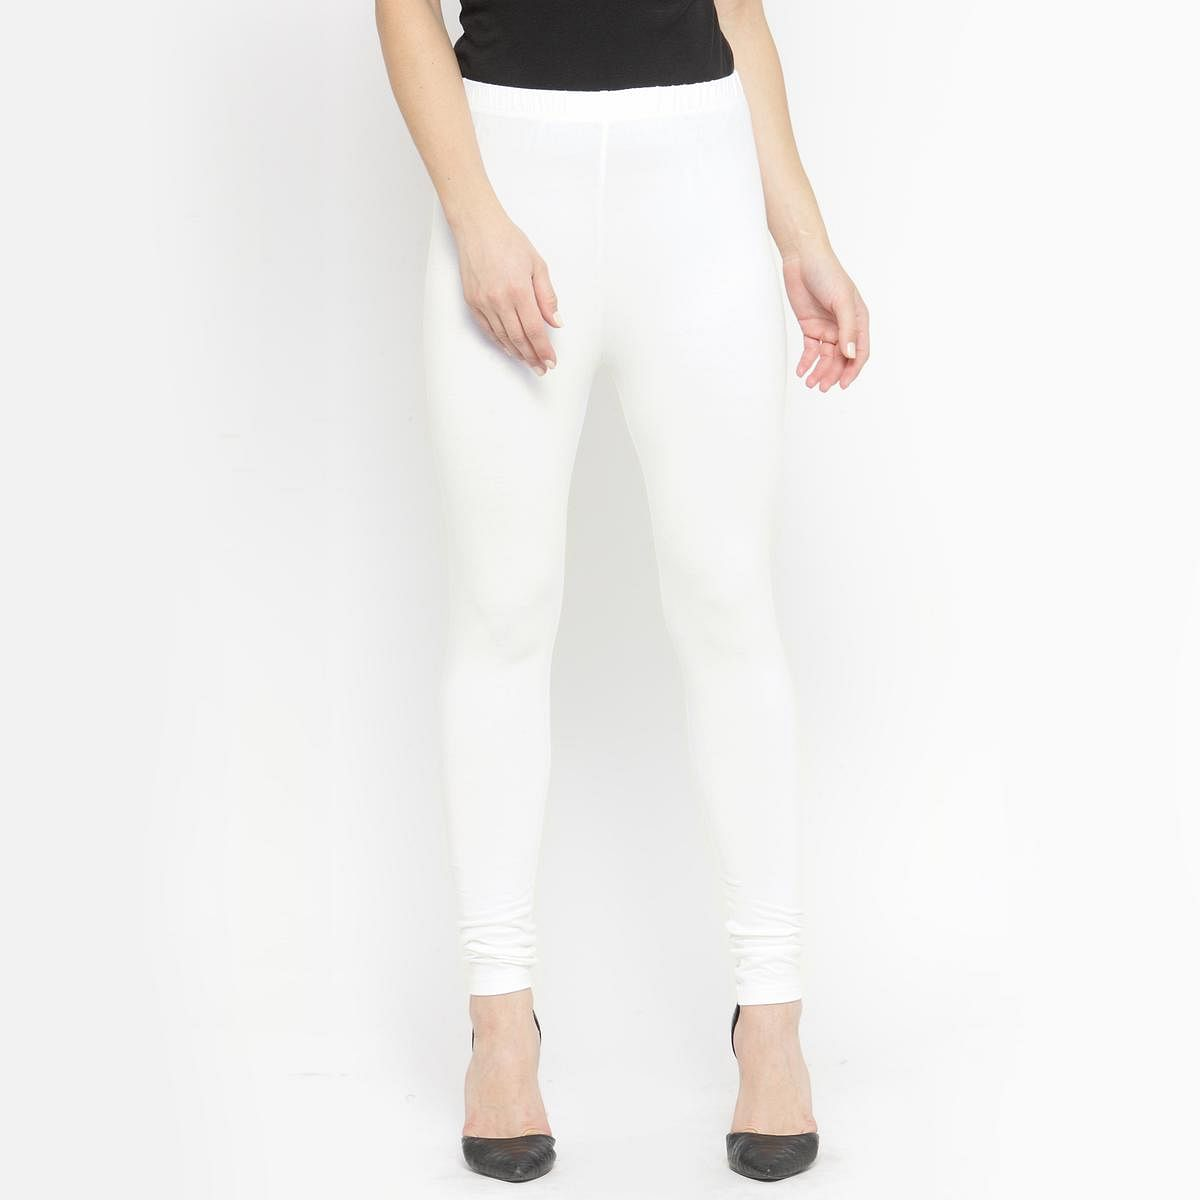 Awesome White Colored Casual Wear Ankle Length Leggings